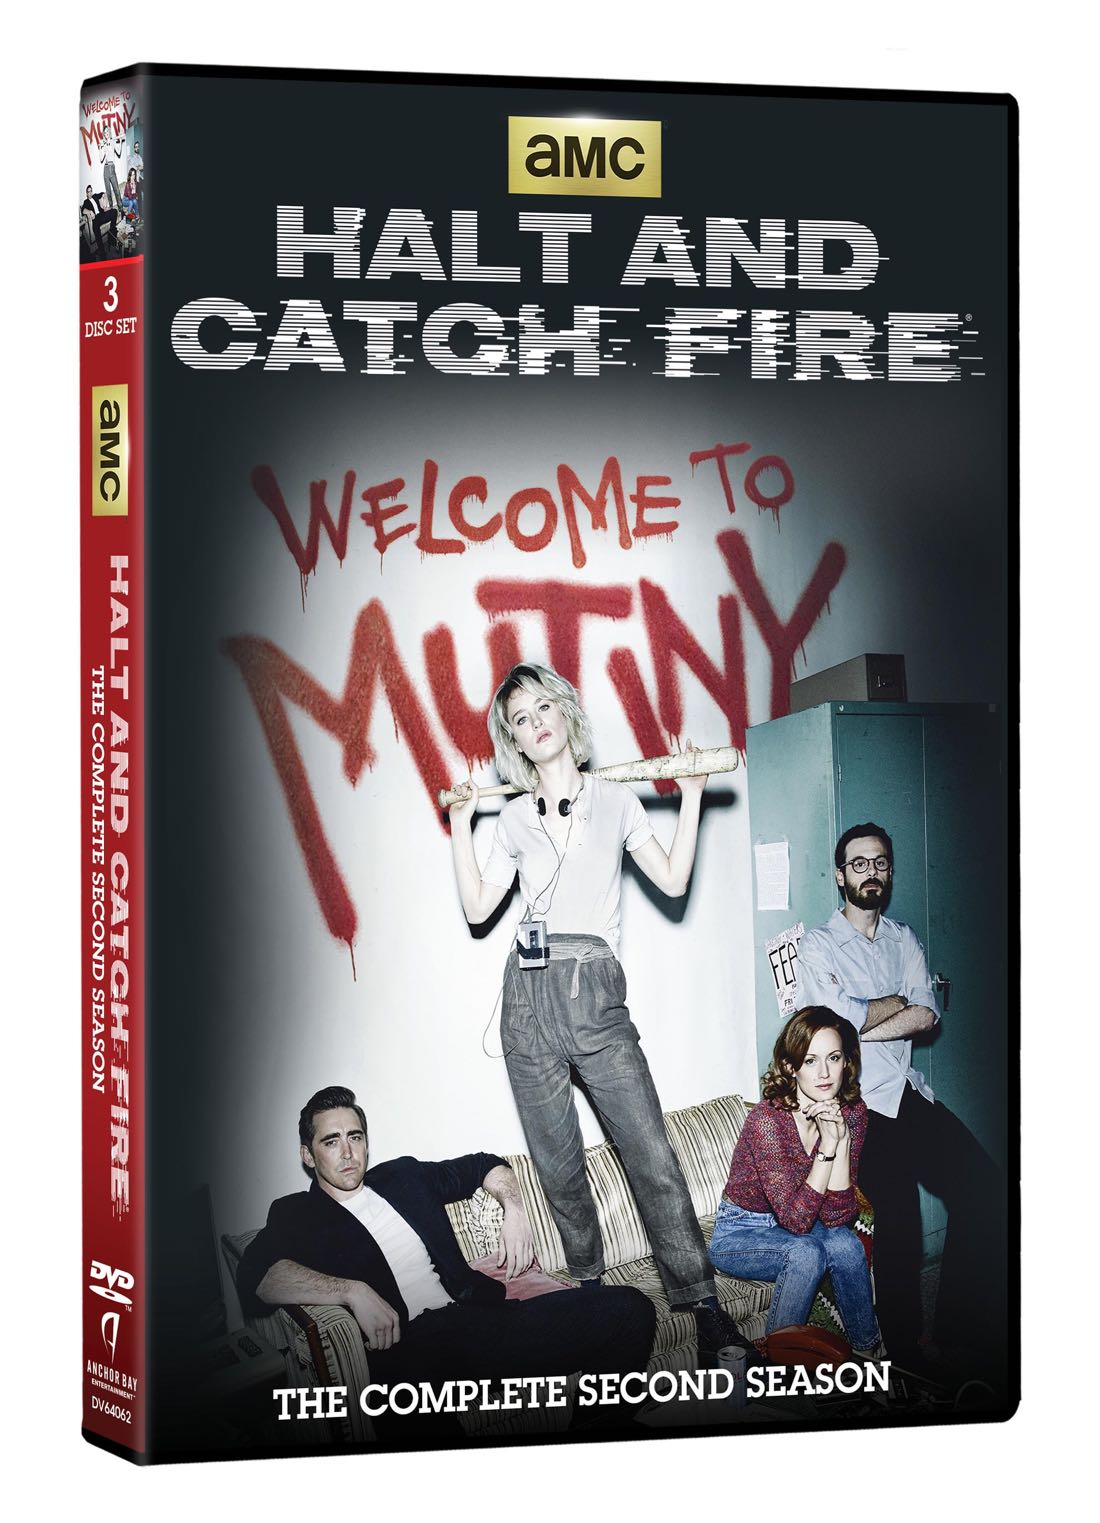 halt-and-catch-fire season 2 dvd